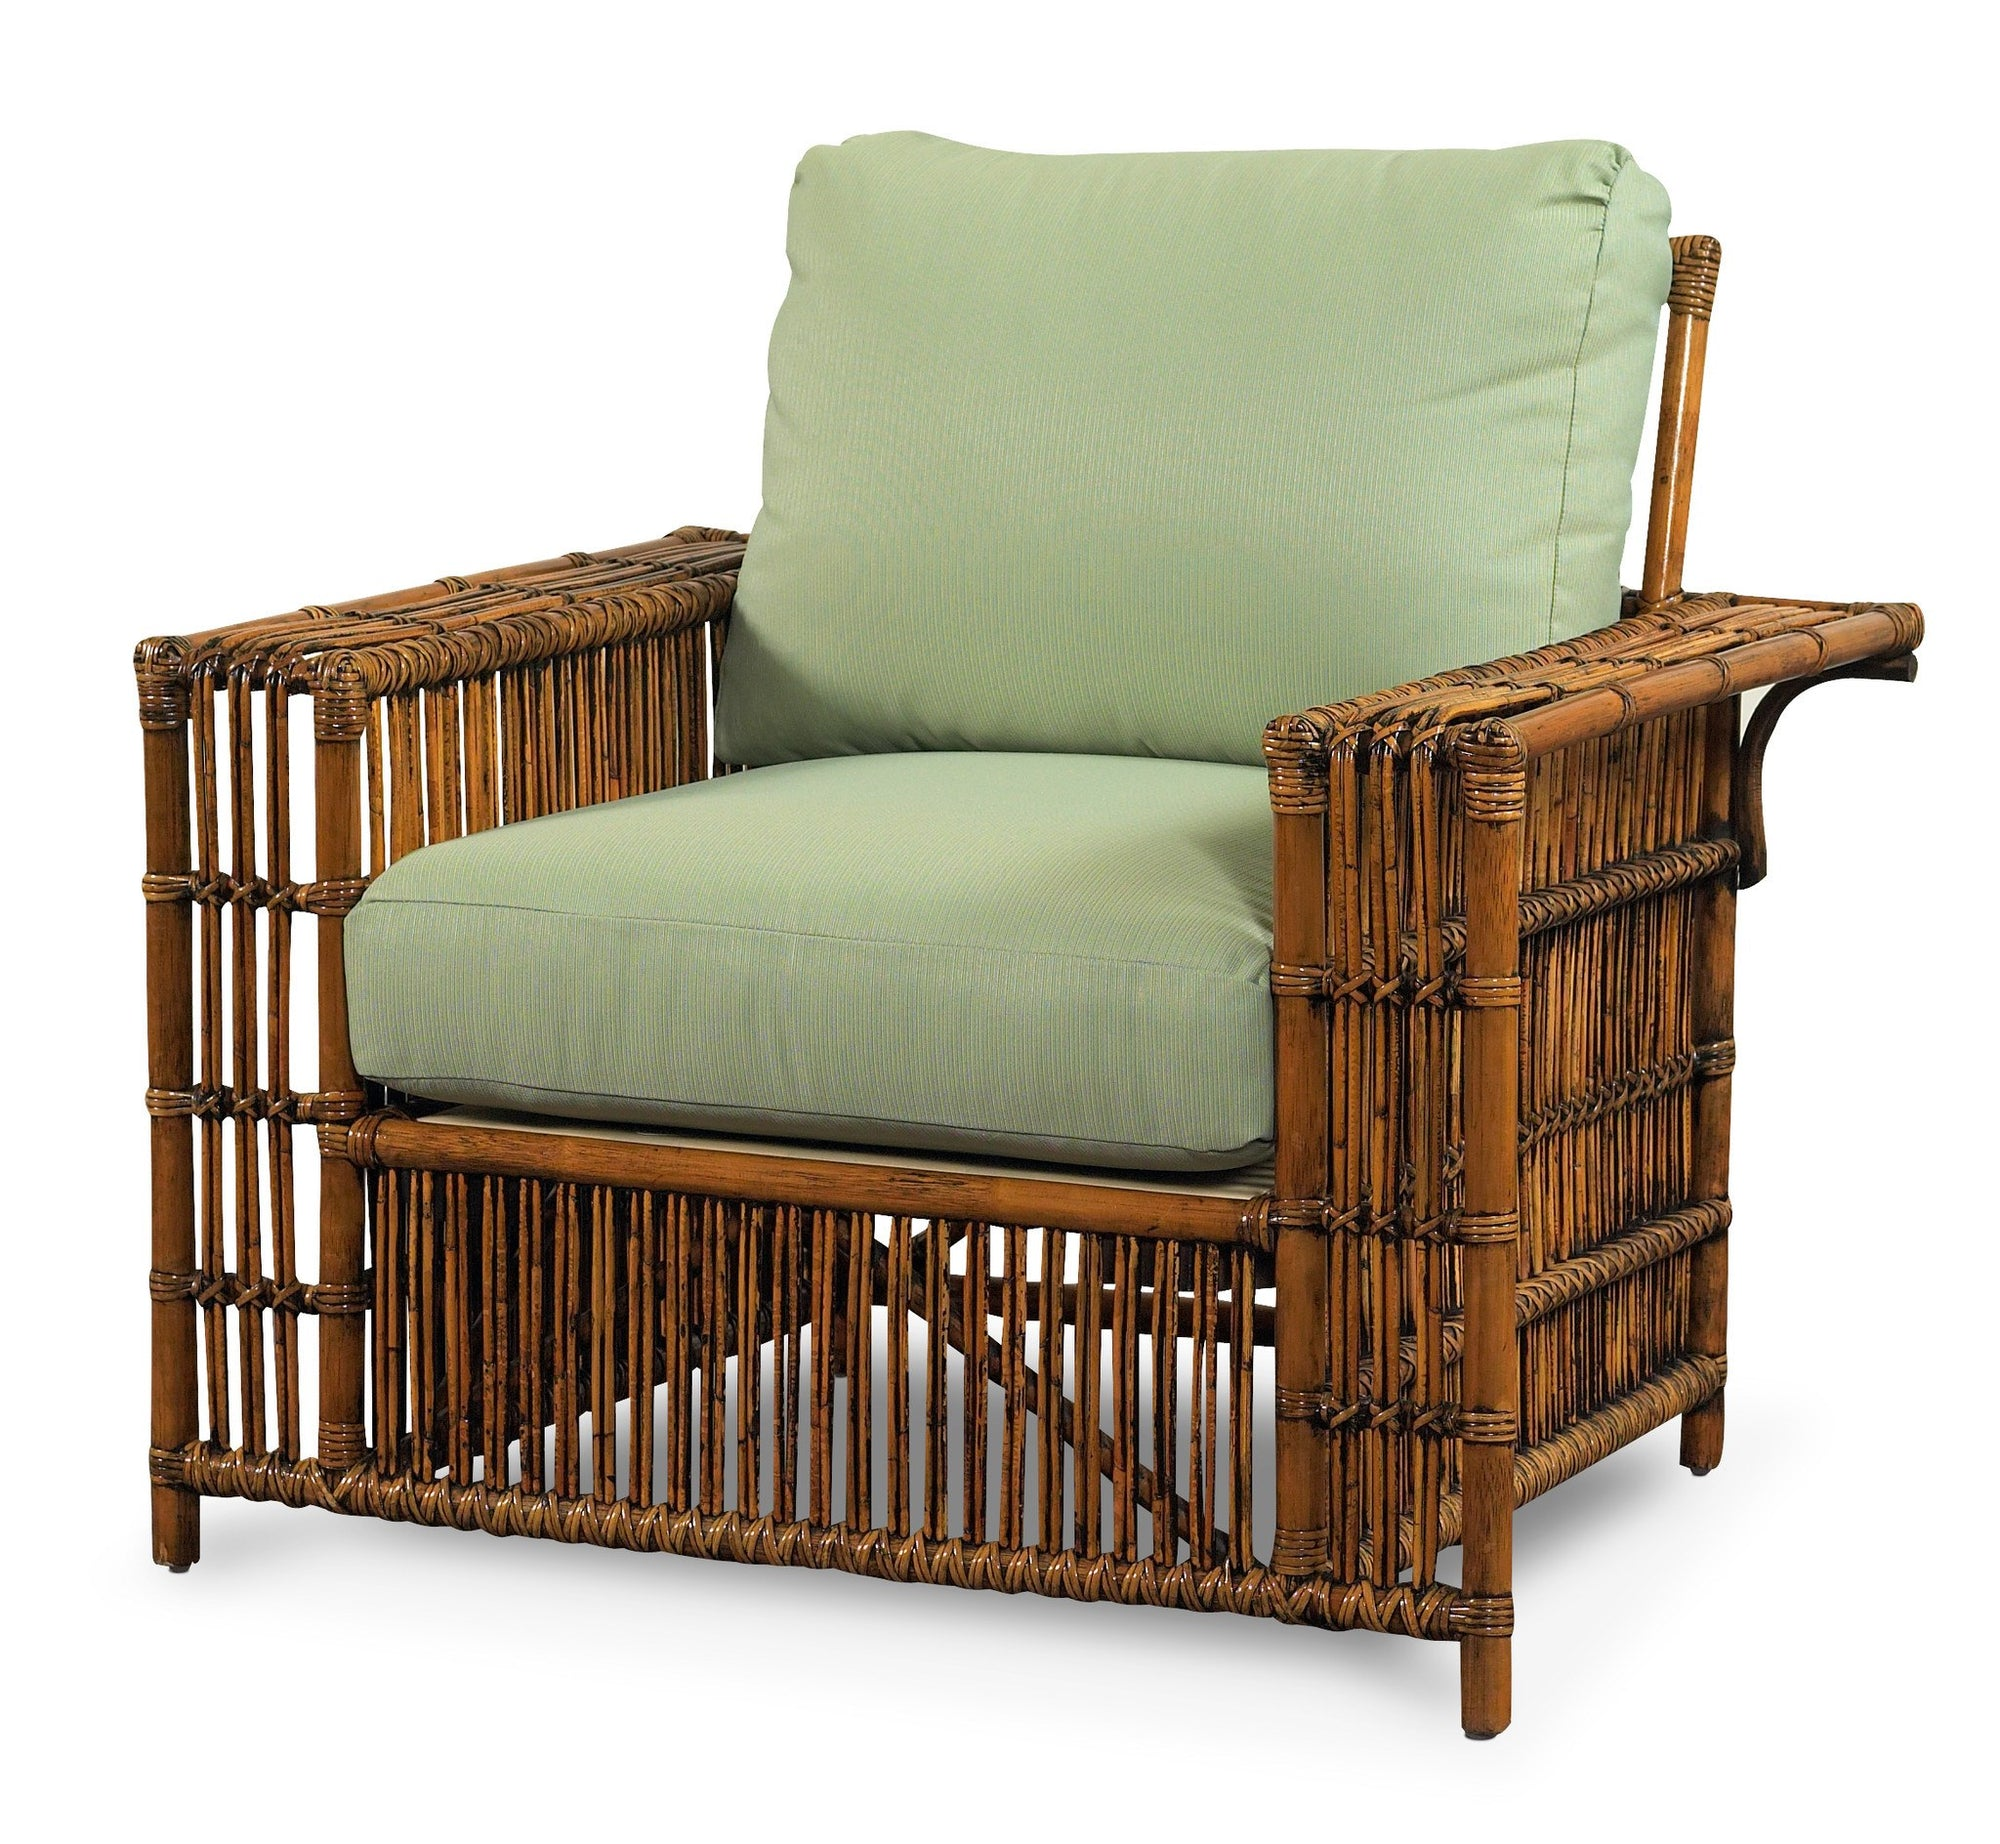 Designer Wicker & Rattan By Tribor Waterside Arm Chair by Designer Wicker from Tribor Chair - Rattan Imports